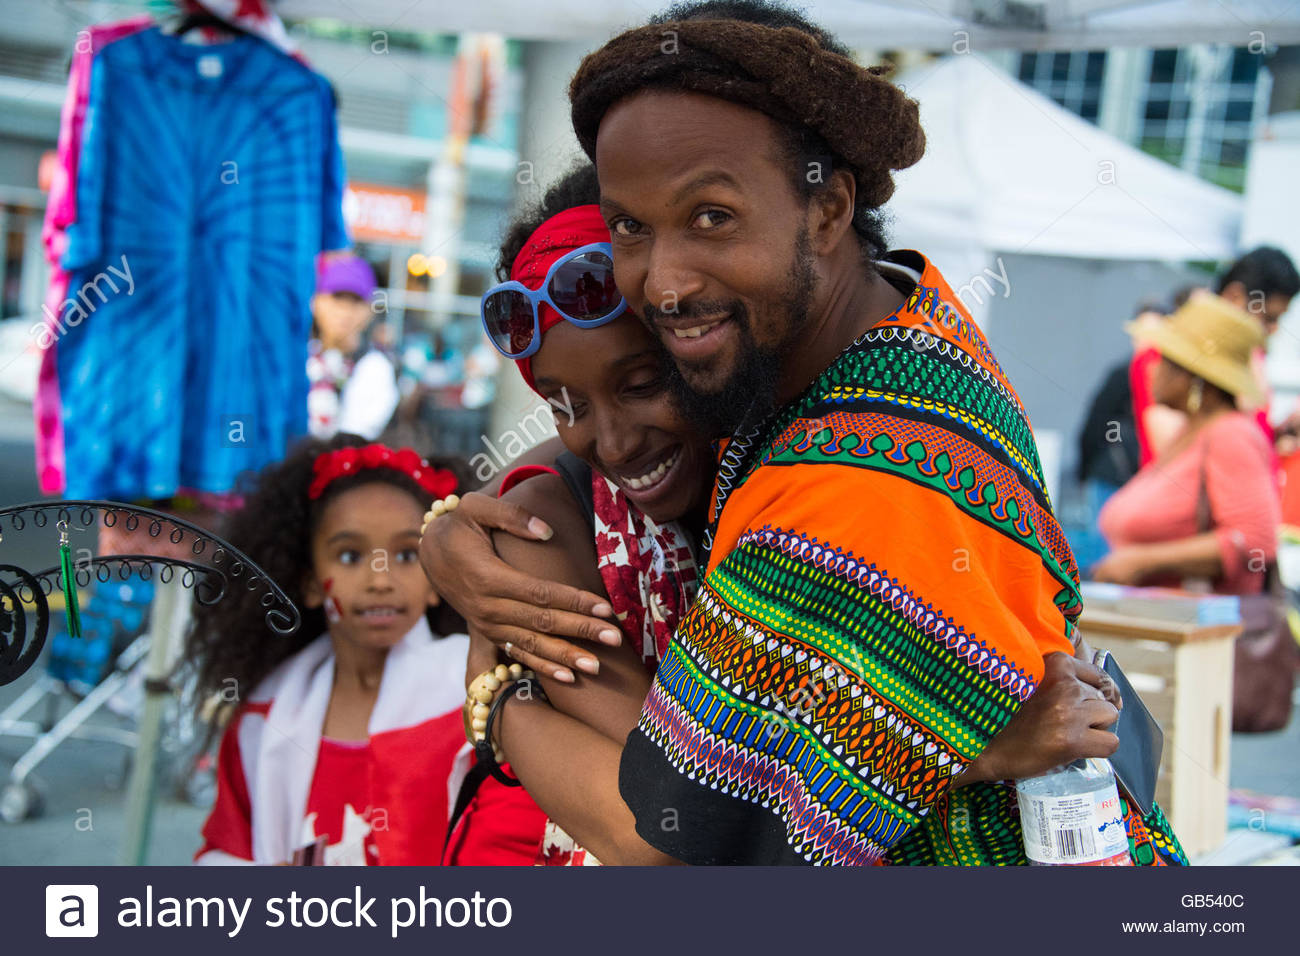 Canada Day people: Jamaican or Afro Caribbean people vendors in Dundas Square - Stock Image